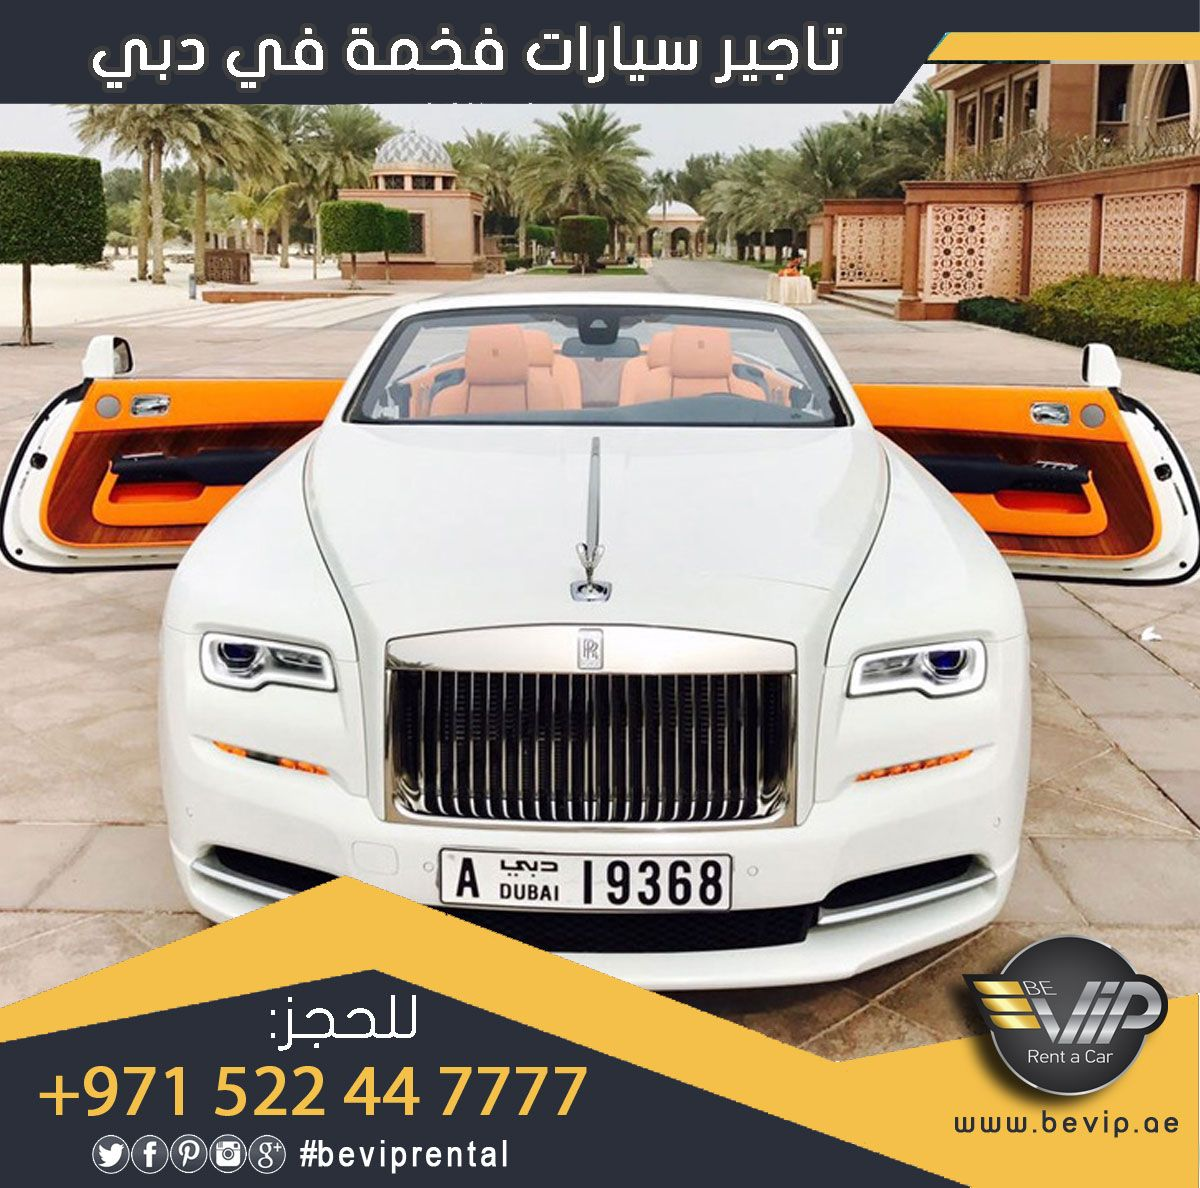 Whenever You Are In Dubai And Want To Rent A Luxury Car Dubai To Make An Impression Be Vip Rent A Car In Dubai Has Go Luxury Car Rental Luxury Cars